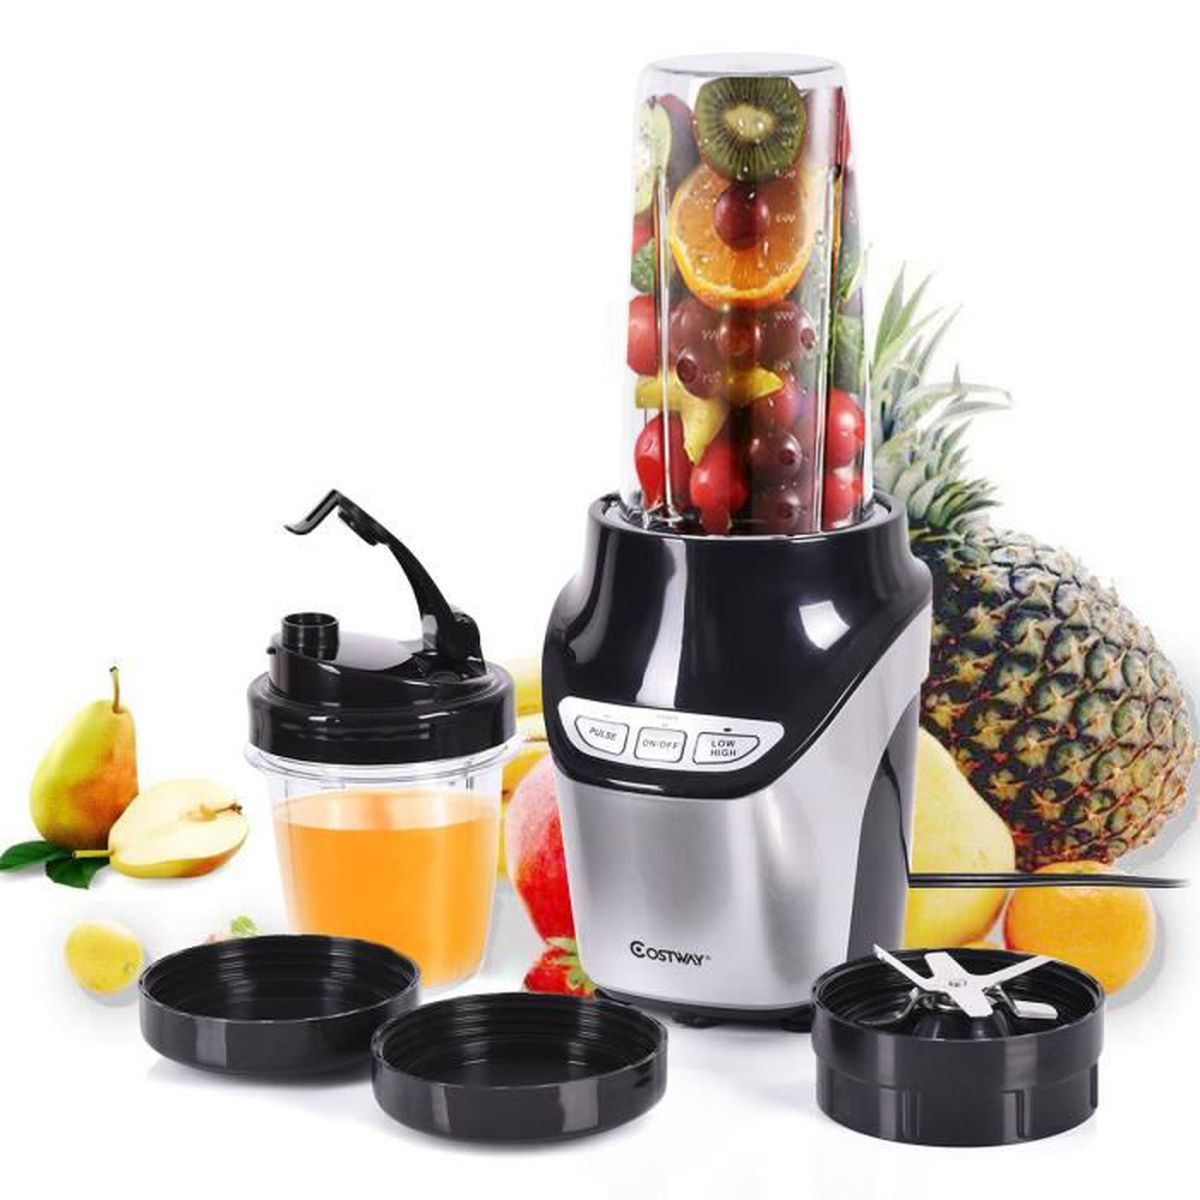 jus maker m langeur robot liquide appareil smoothie universel fabricant de soupe cuisine. Black Bedroom Furniture Sets. Home Design Ideas